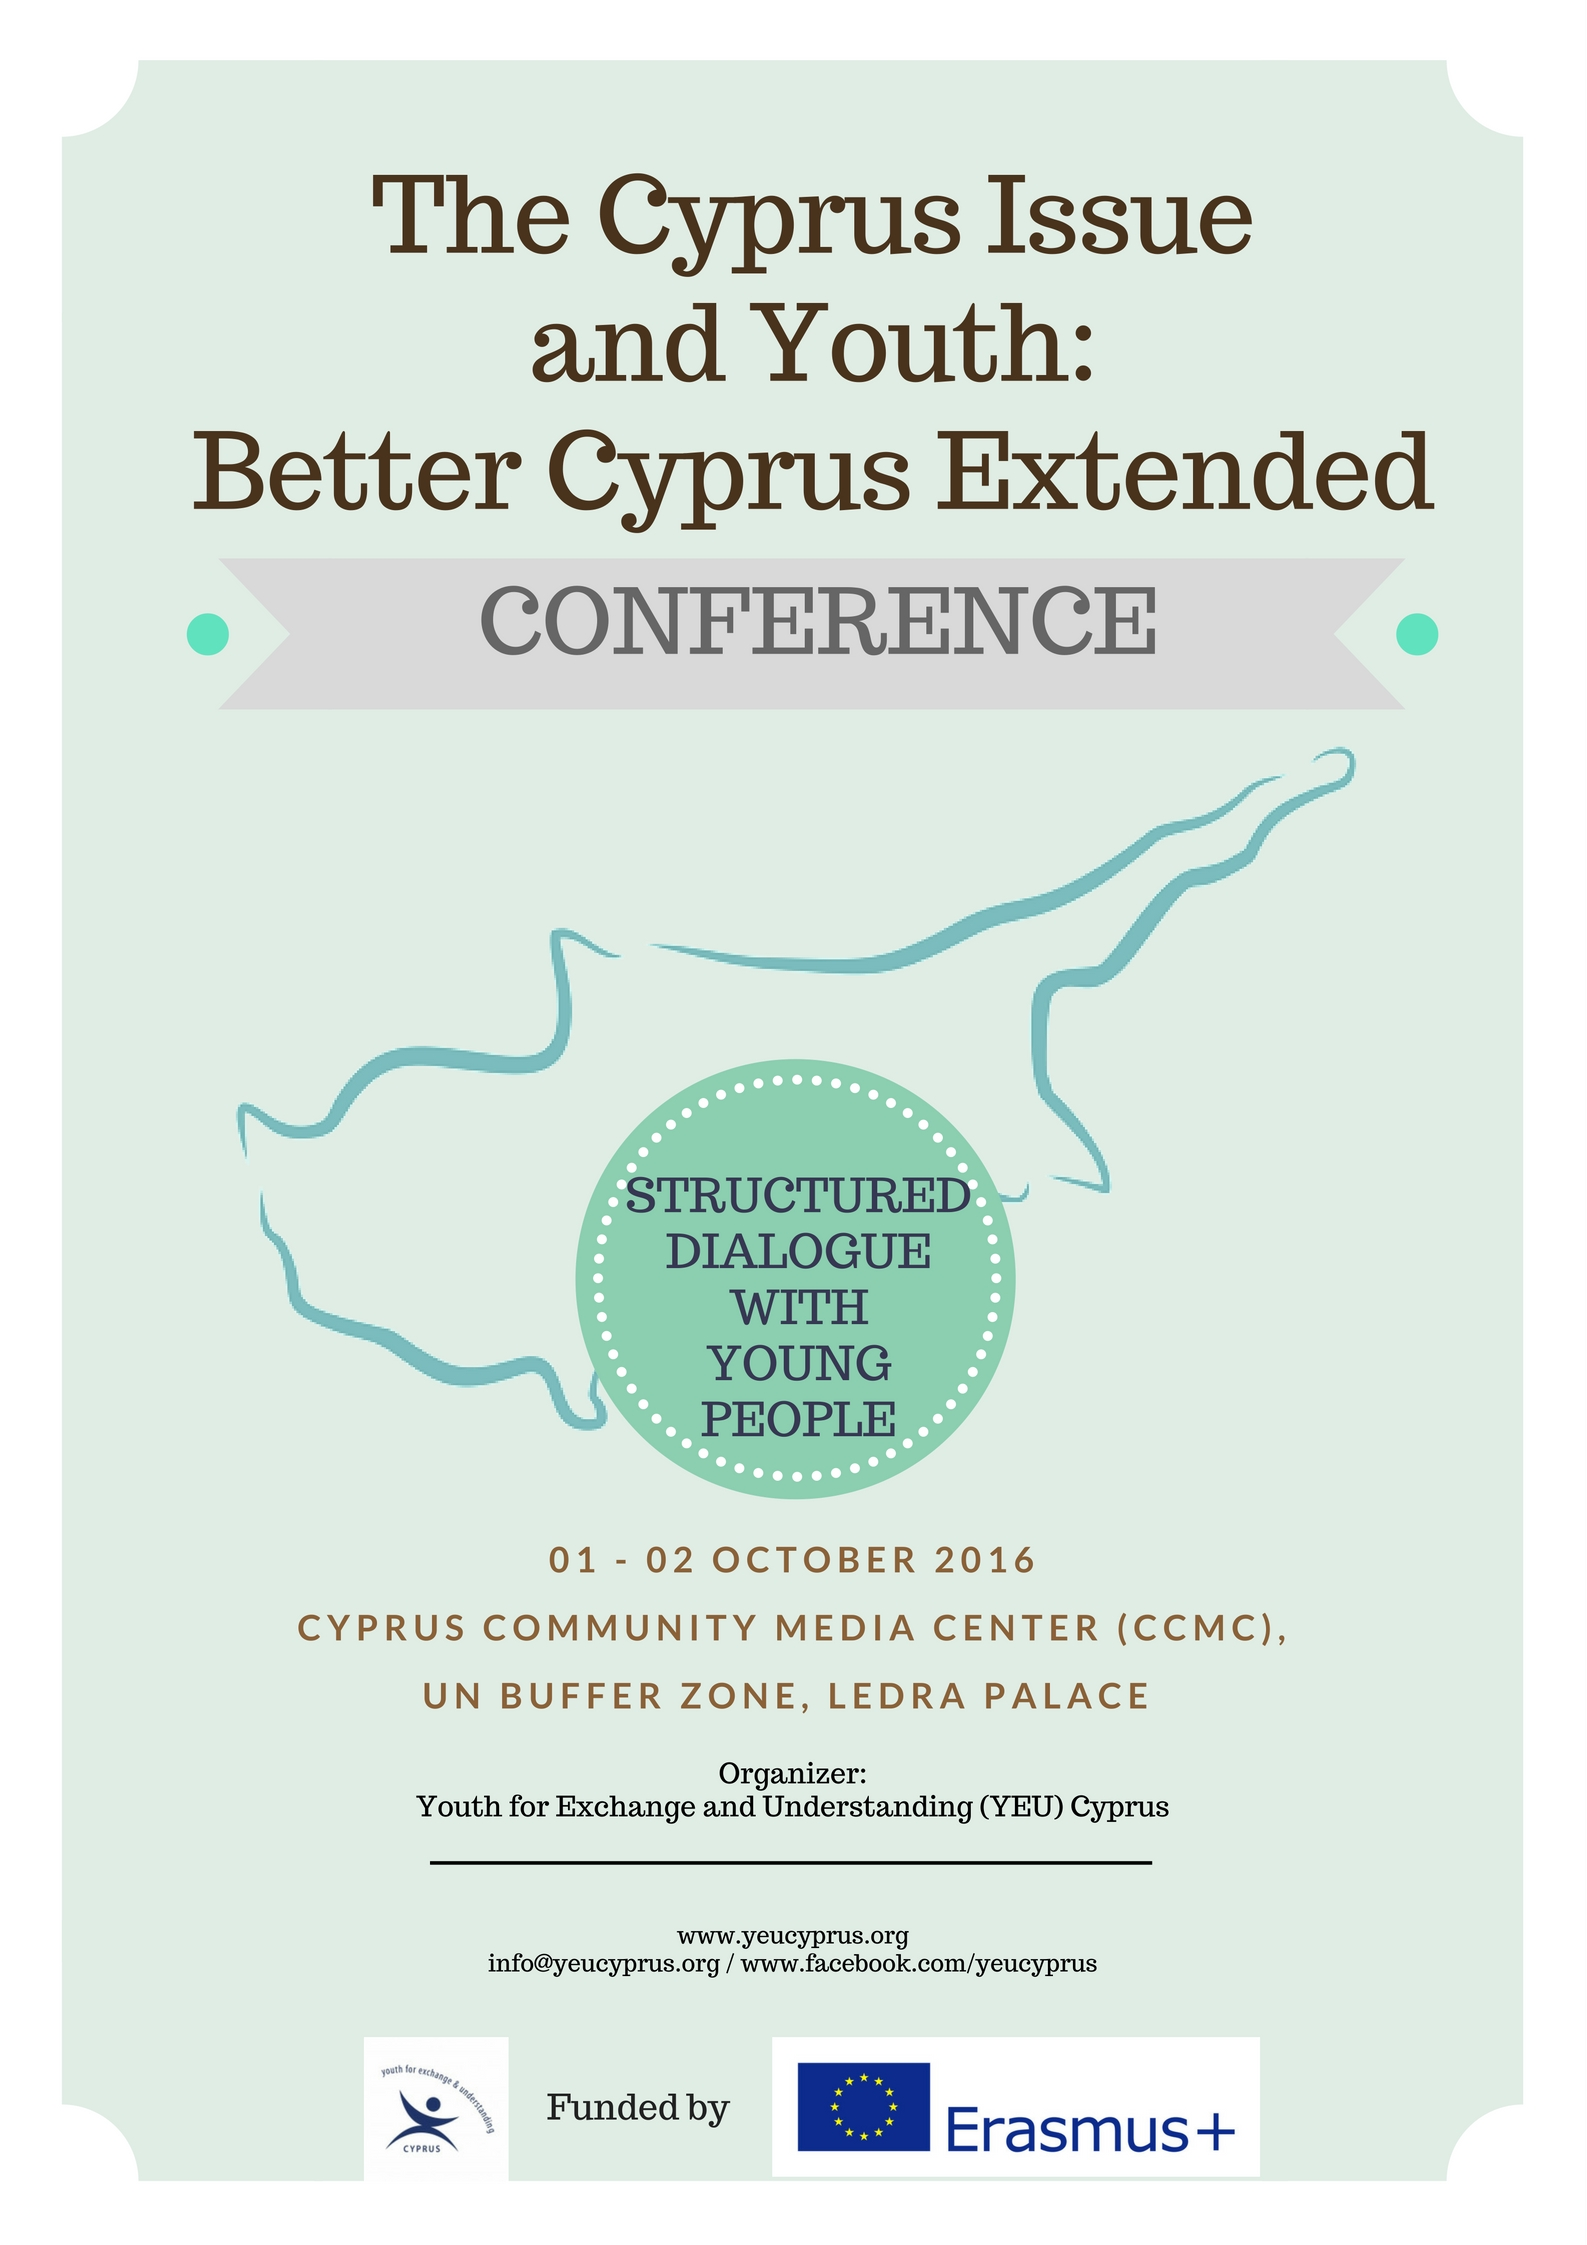 THE CYPRUS ISSUE AND YOUTH- BETTER CYPRUS EXTENDED